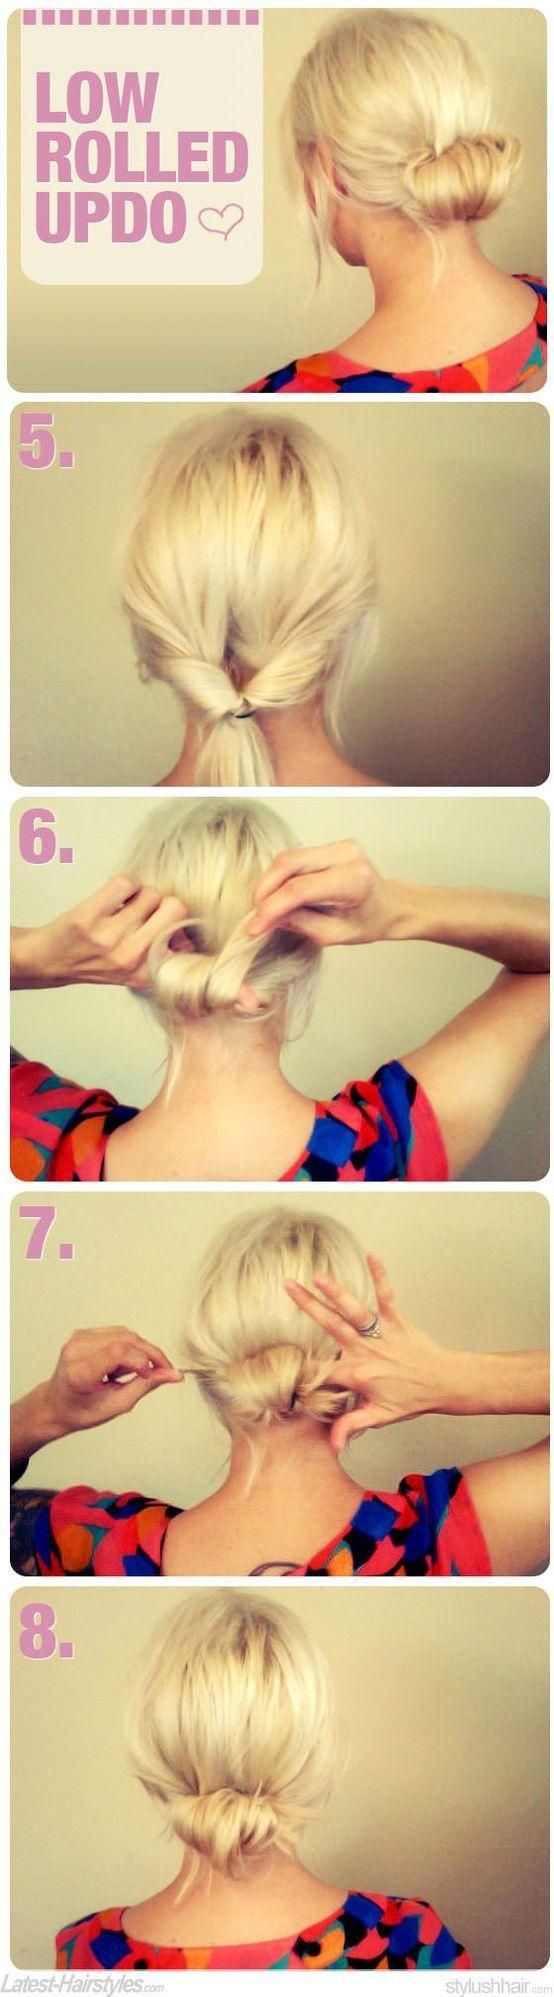 How-To: The Low Rolled Updo #hair #tutorial